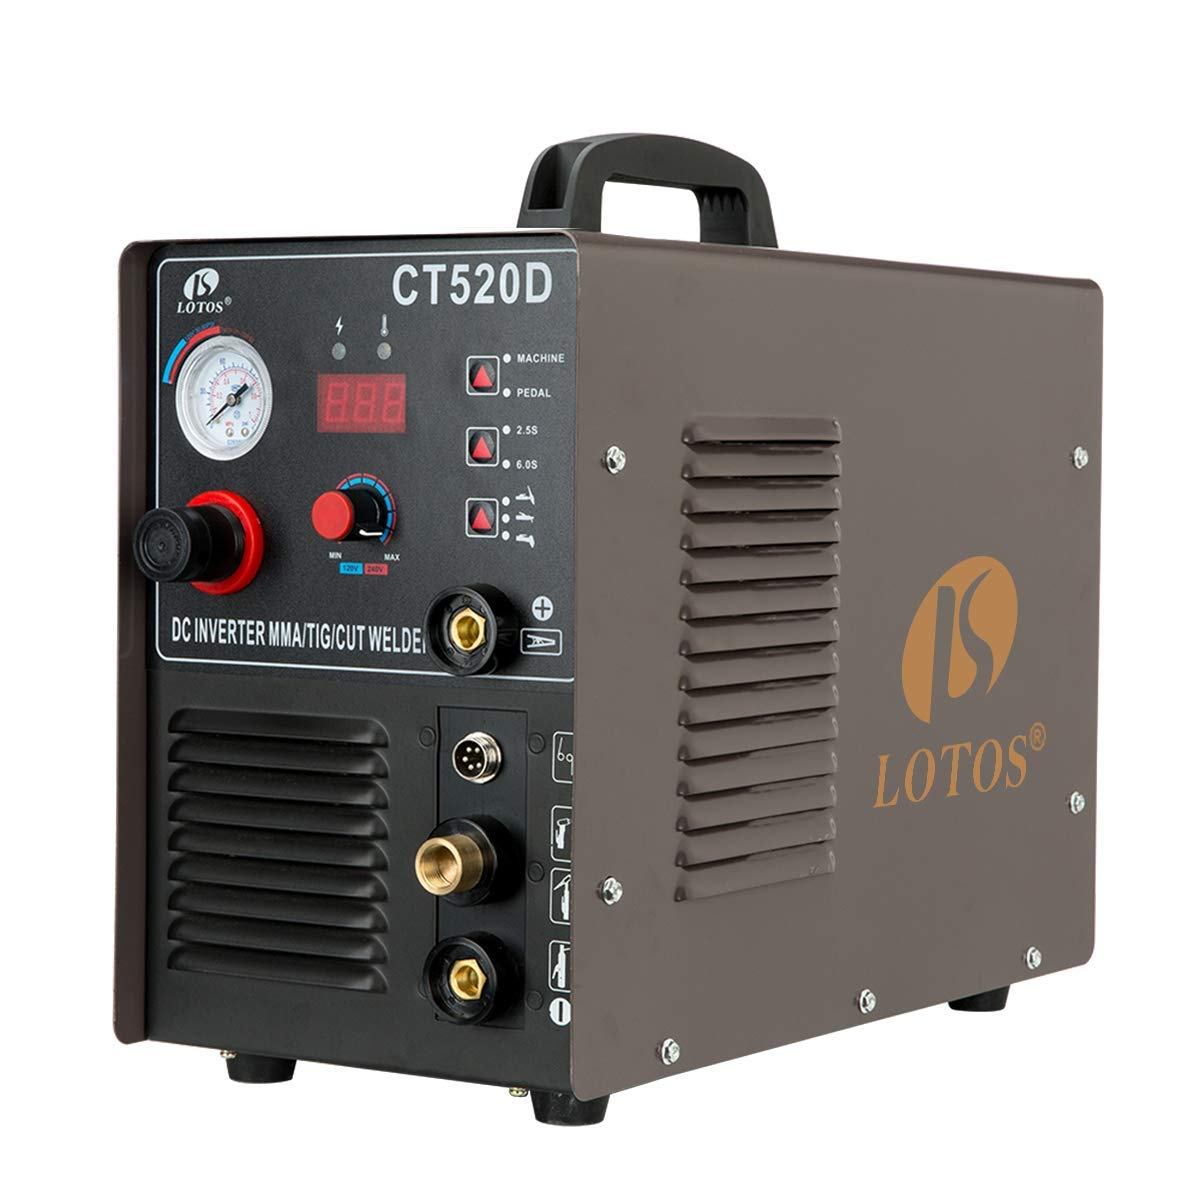 Lotos ct520d Welder Machine